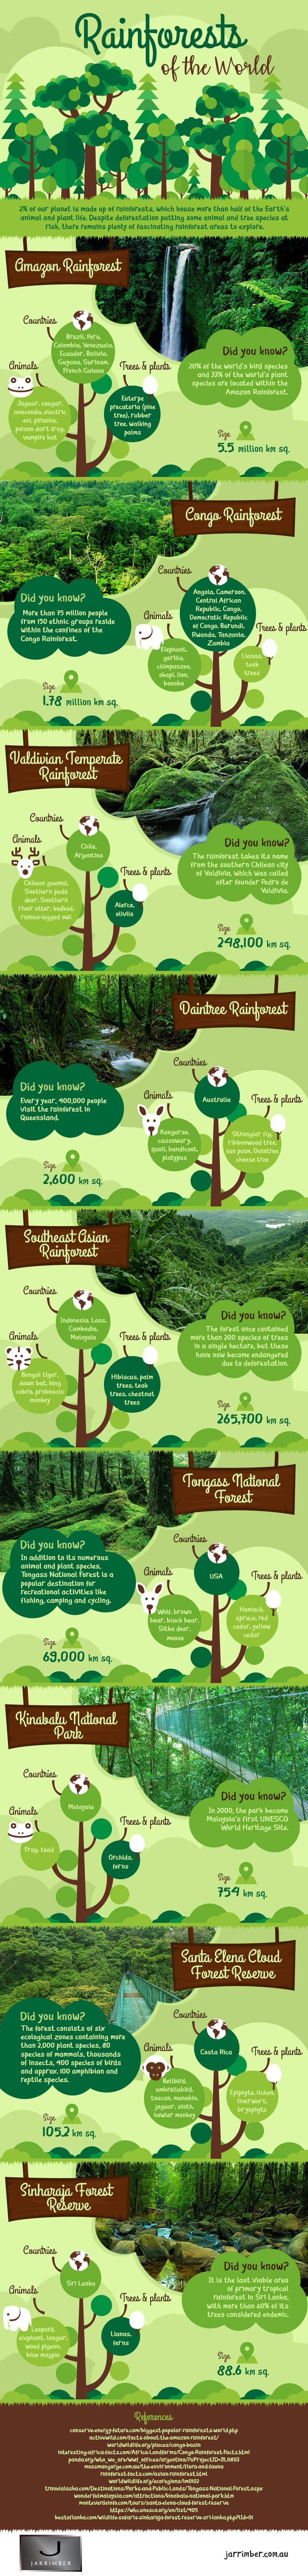 rainforests-world-infographic